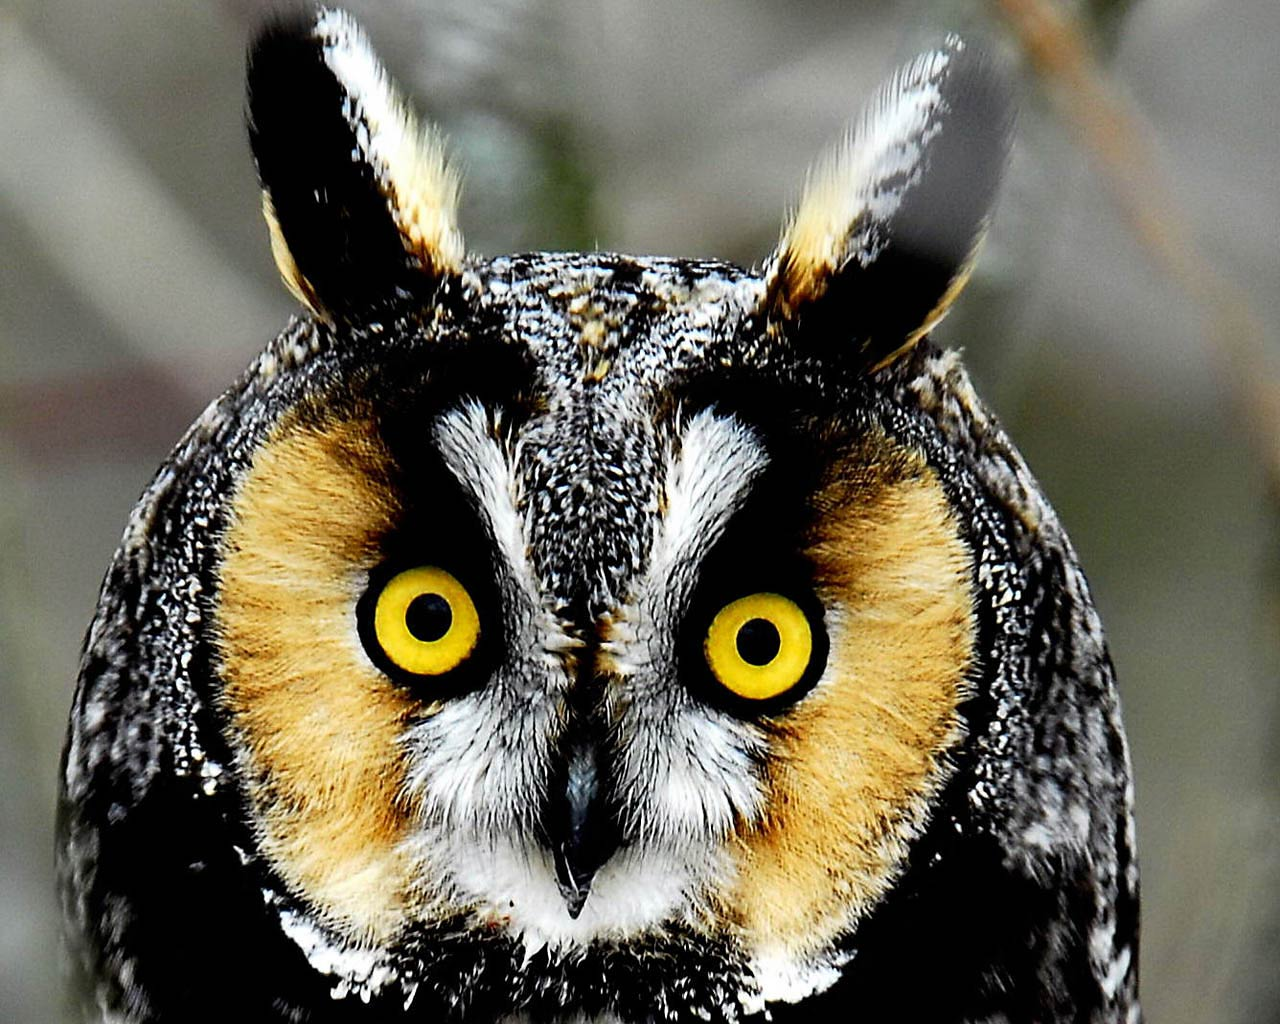 Cute Owl Wallpaper High Definition Wallpapers For Free 1280x1024